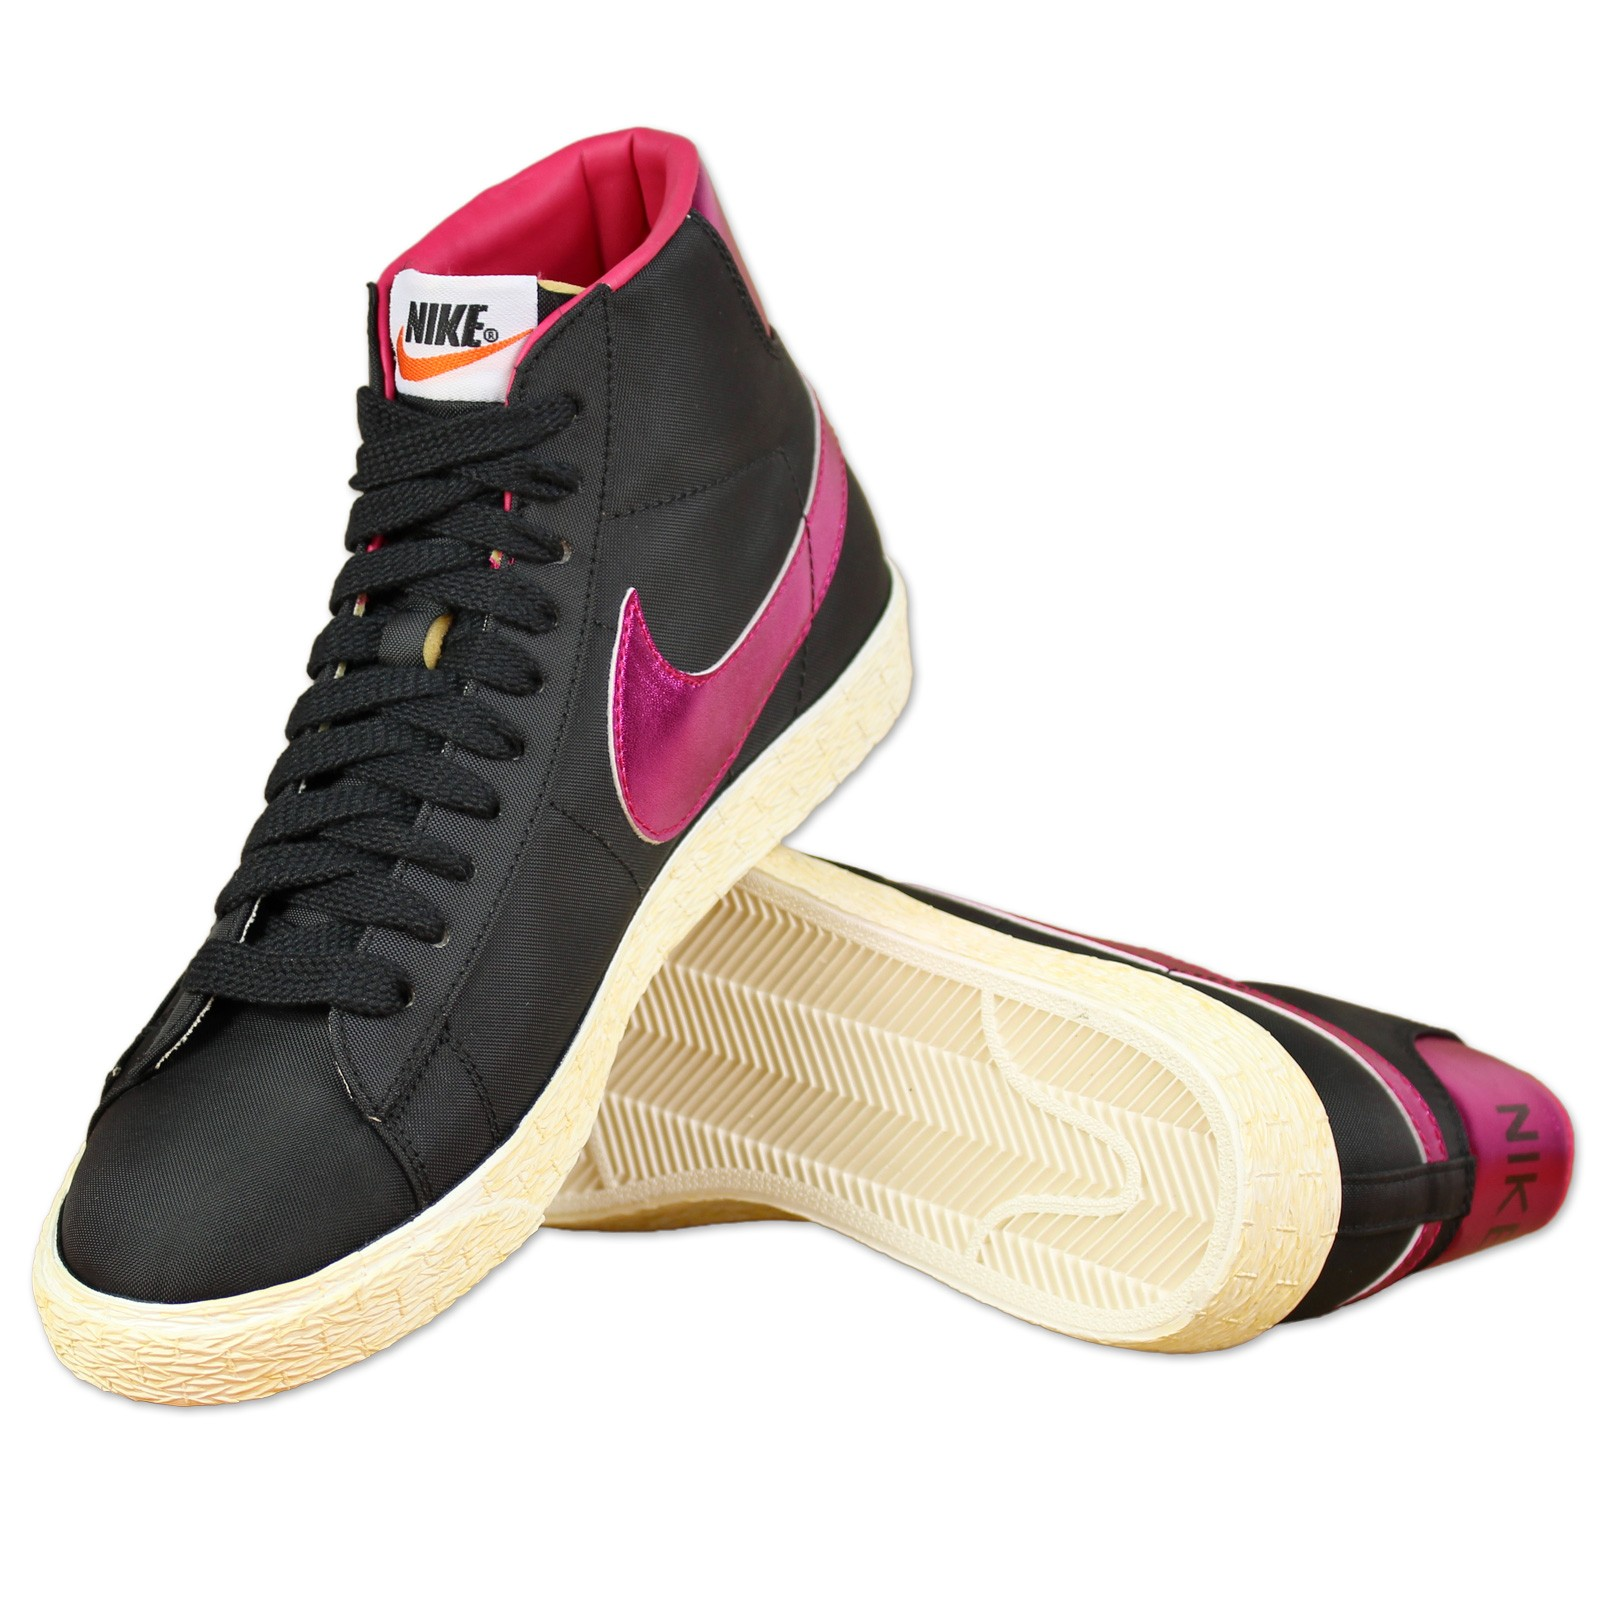 Nike Glossy Purple Shoes For Women